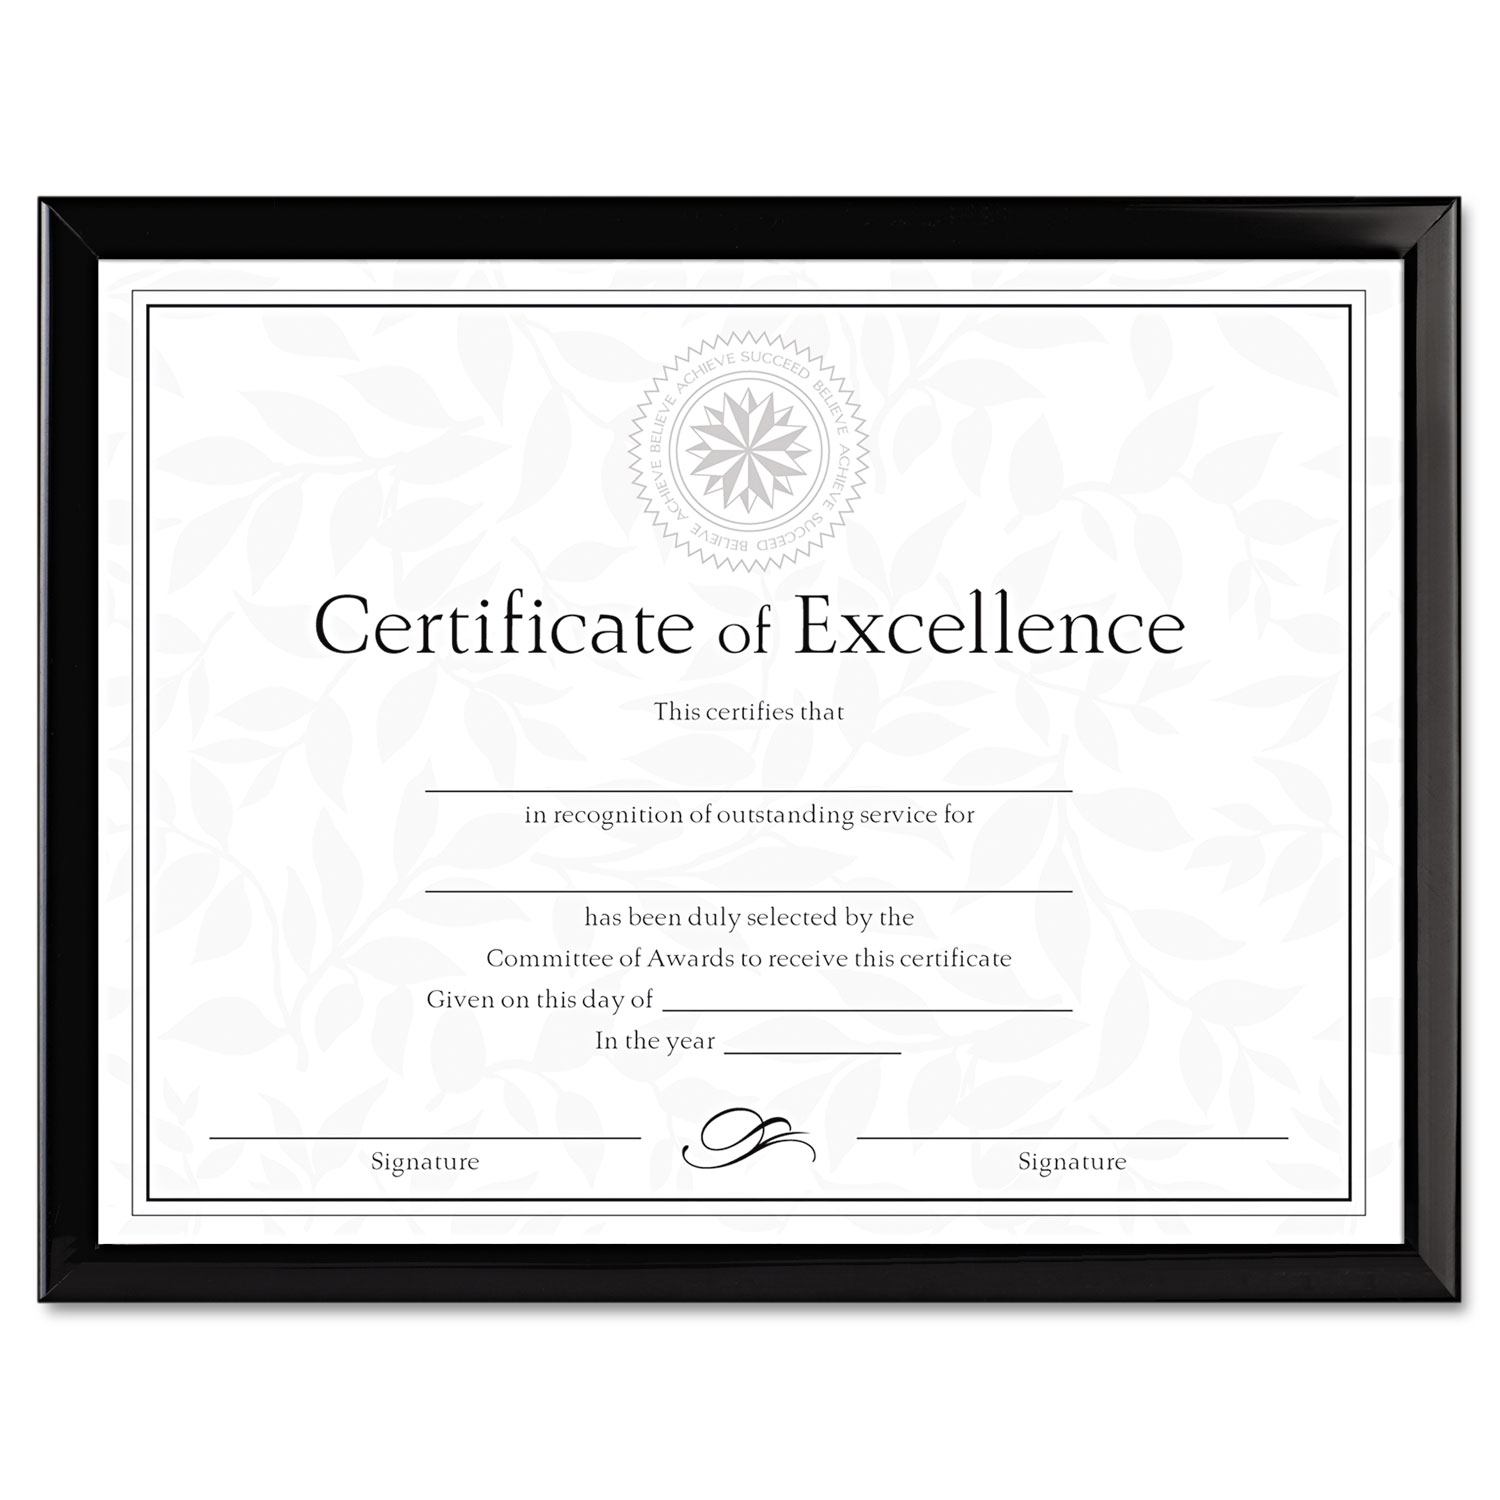 Value U-Channel Document Frame w/Certificates, 8 1/2 x 11, Black